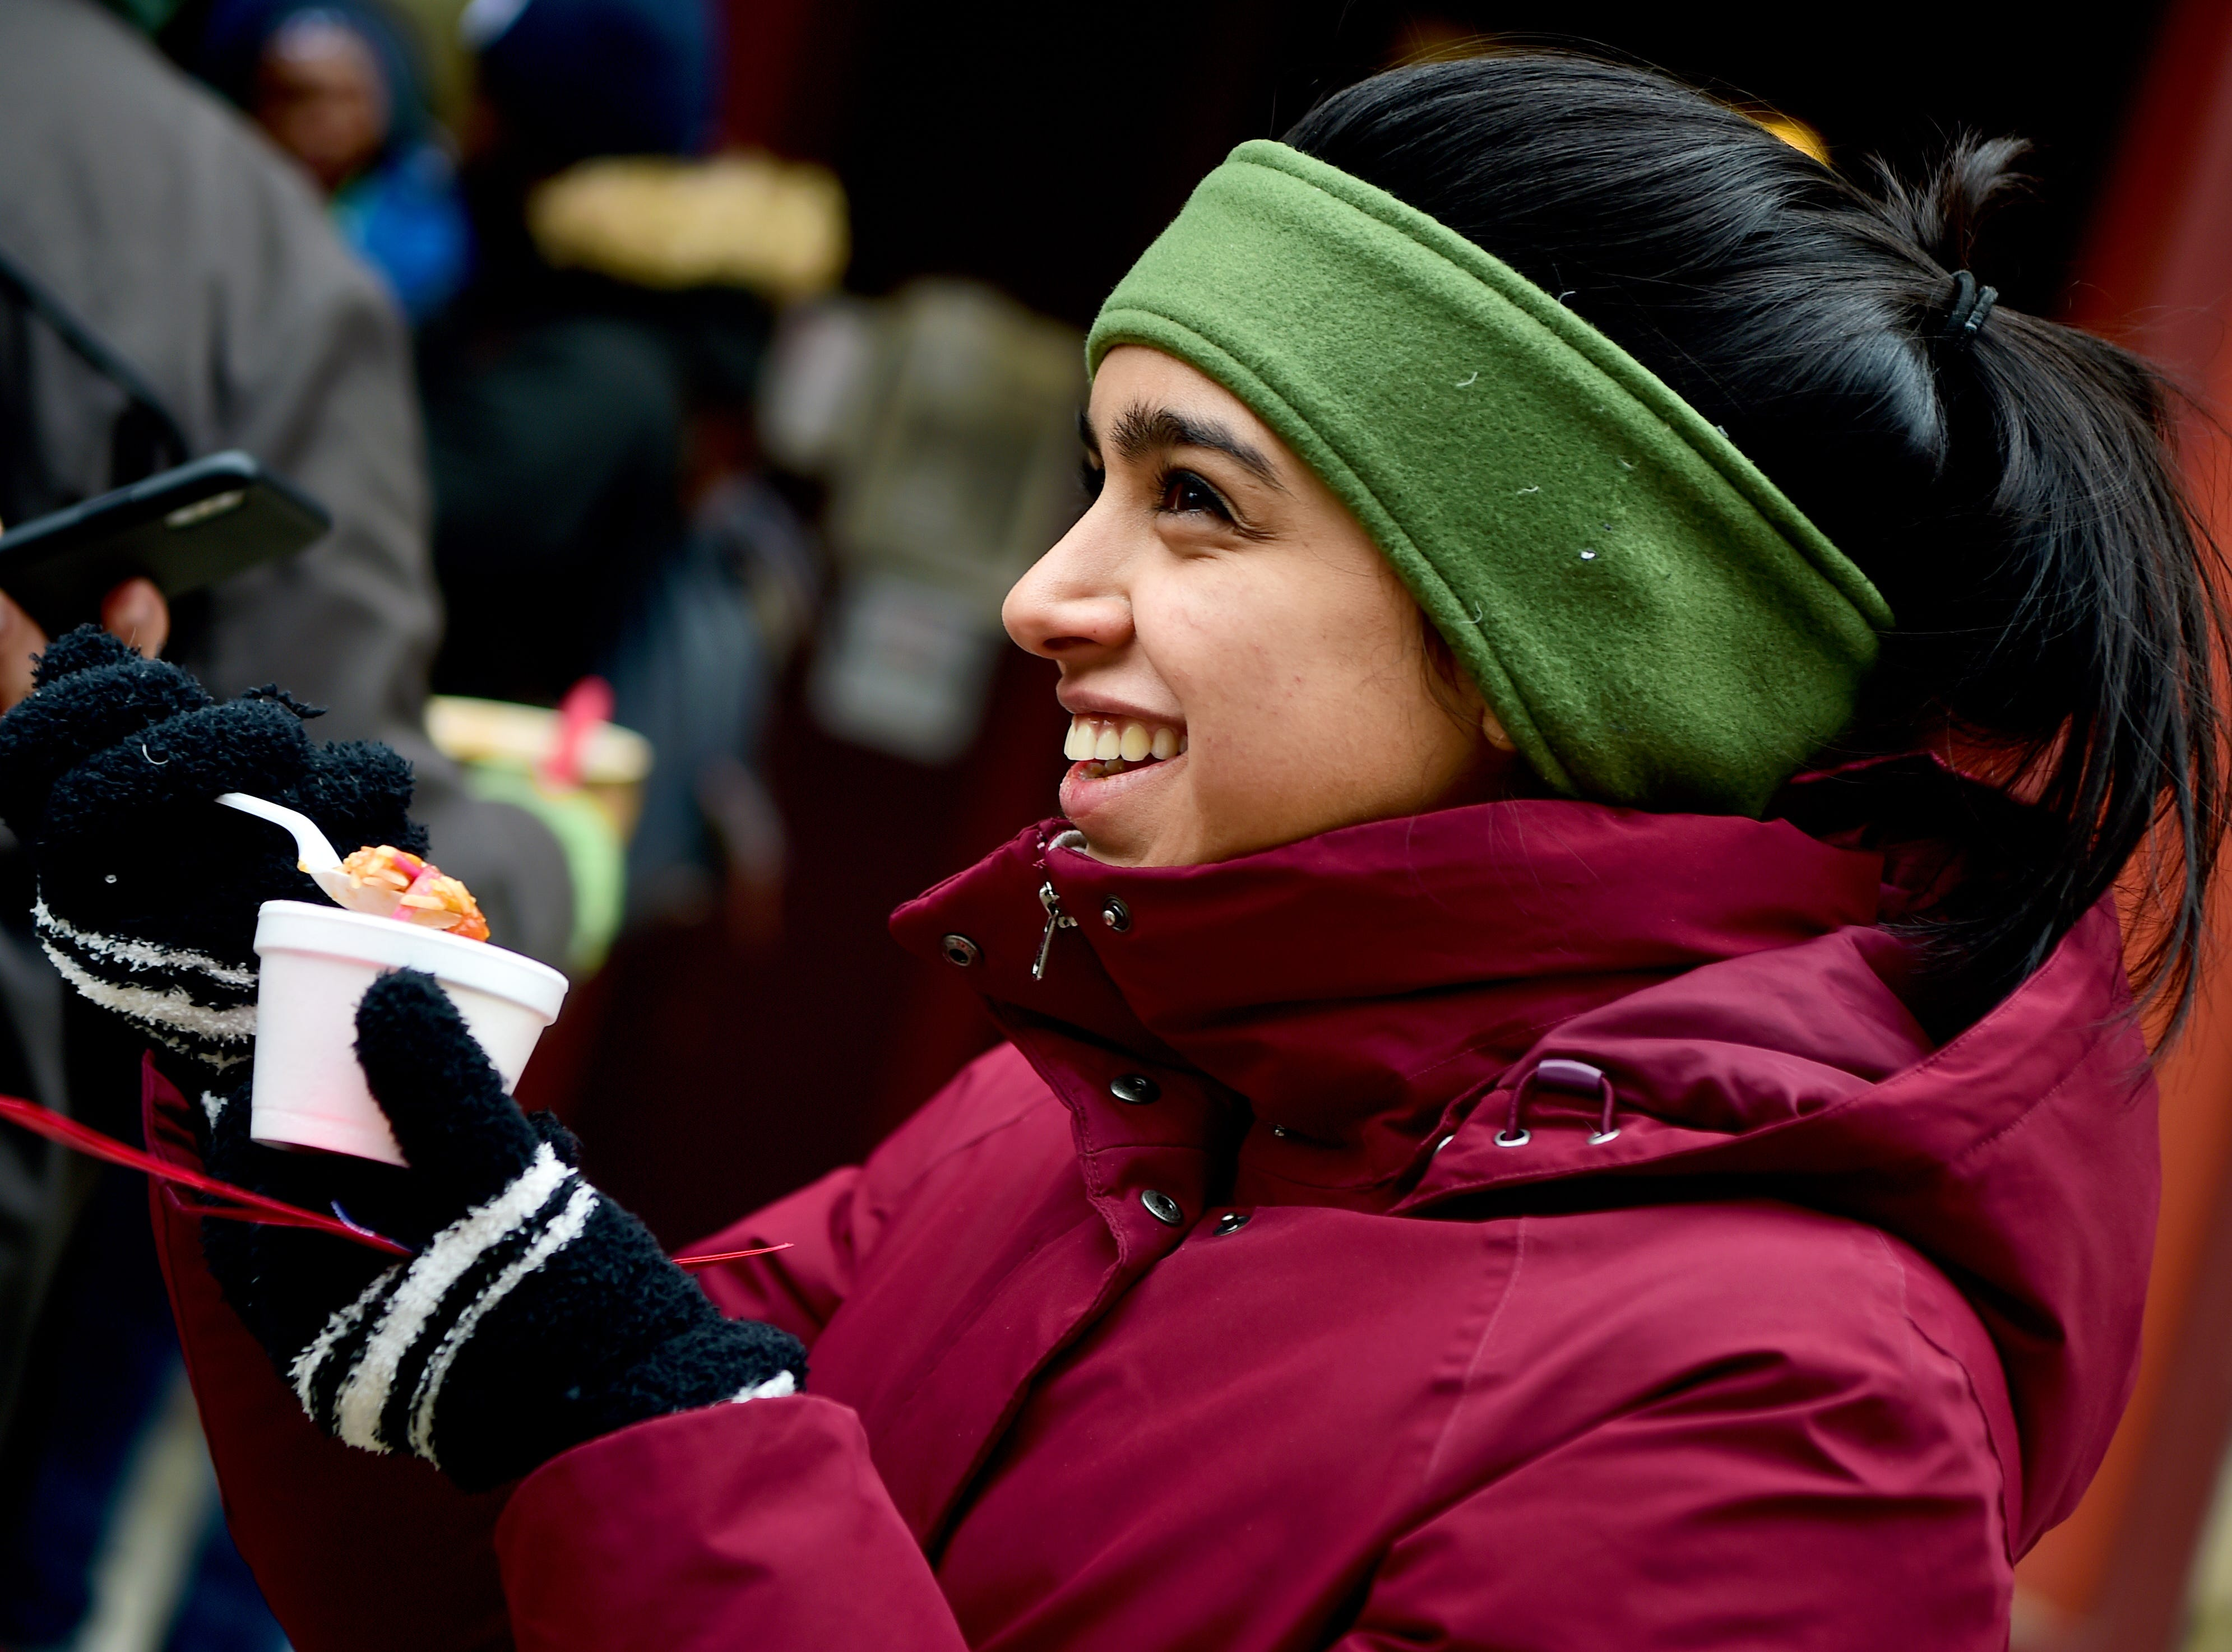 Maryam Quraishi, a Cornell student, tastes chili from Mia's during the 21st Annual Downtown Ithaca Chili Cook-off was held on the Ithaca Commons on Saturday. The event featured unique meat, vegetarian and vegan chilis made by local restaurants. February 8, 2019.